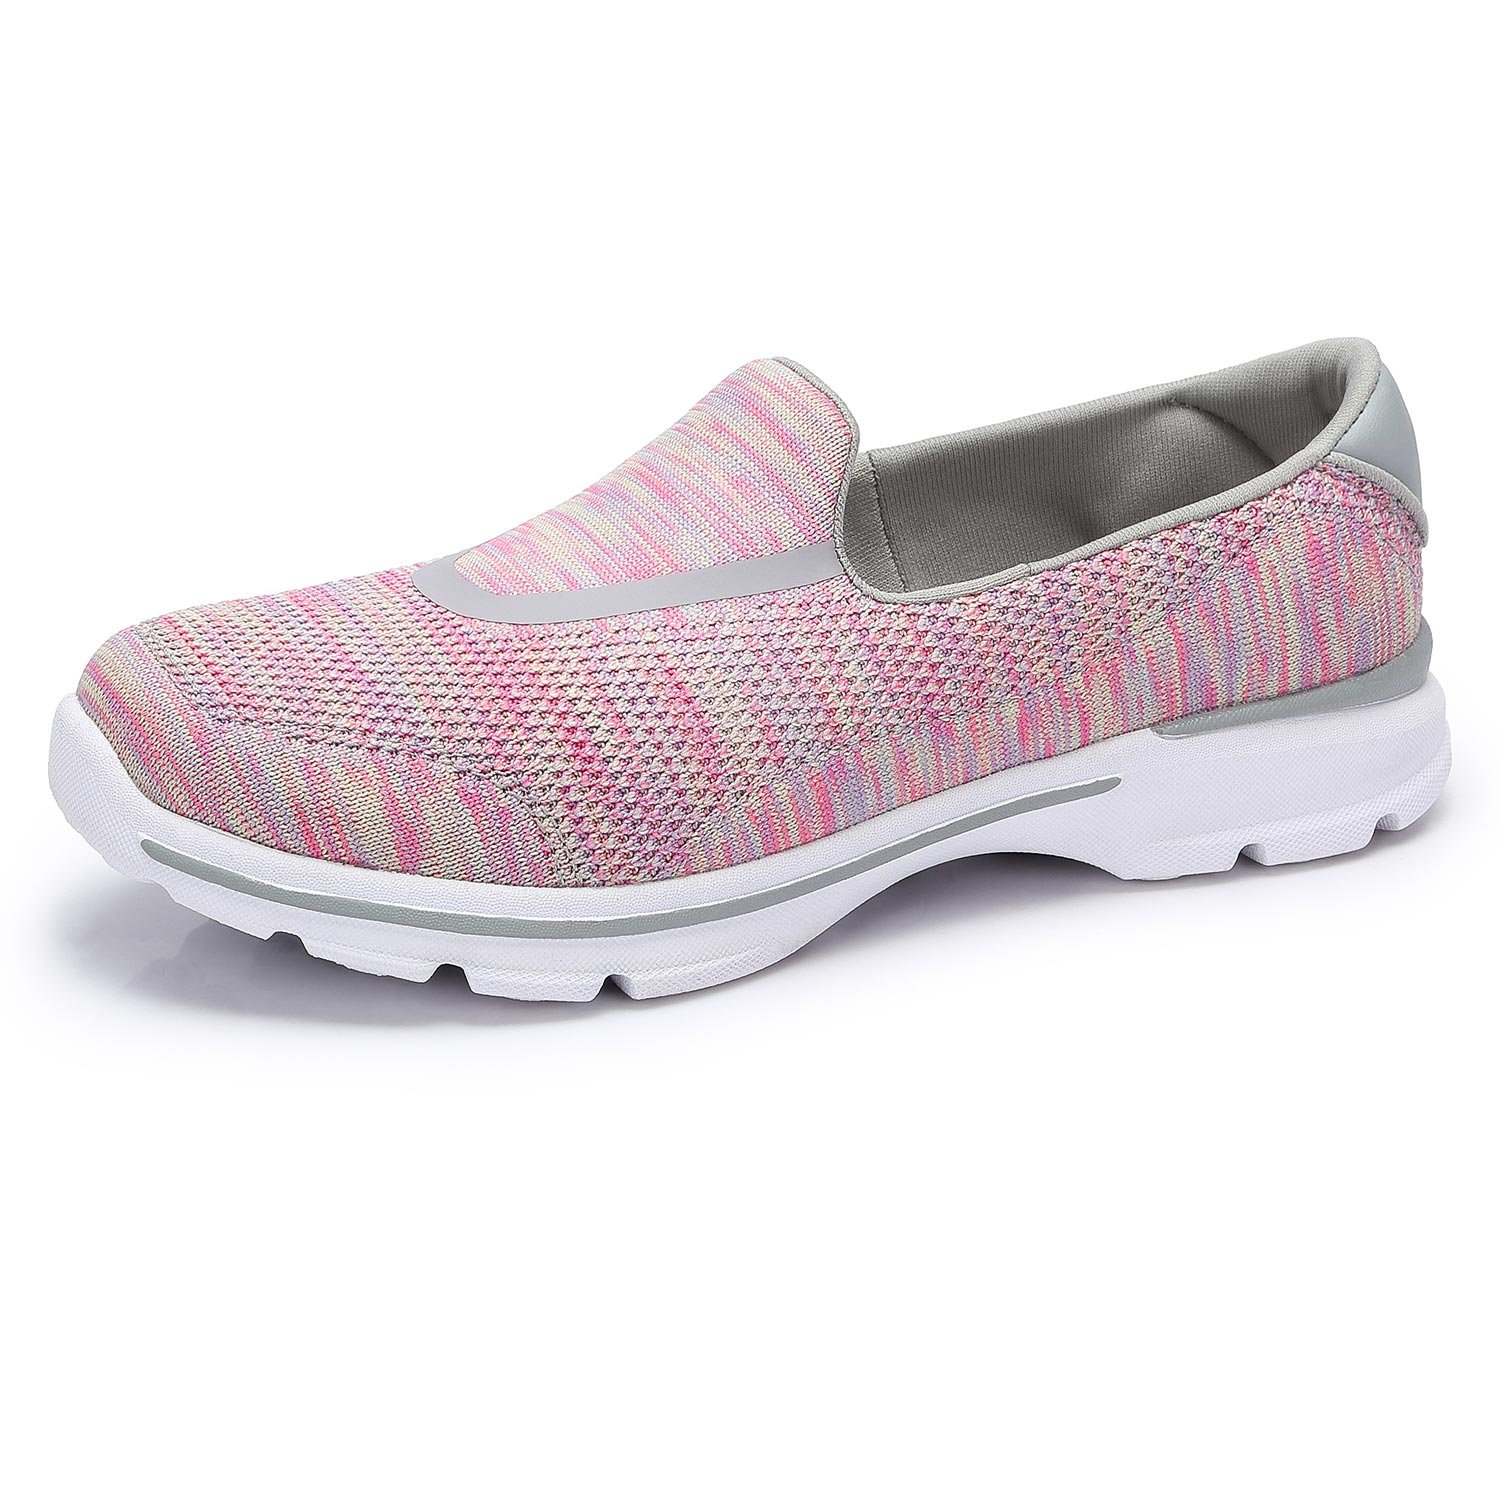 Camel Women's Shoes Breathable Mesh Slip-On Lightweight Walking Shoes Memory Foam Insoles Sneakers (7 B(M) US, Pink)